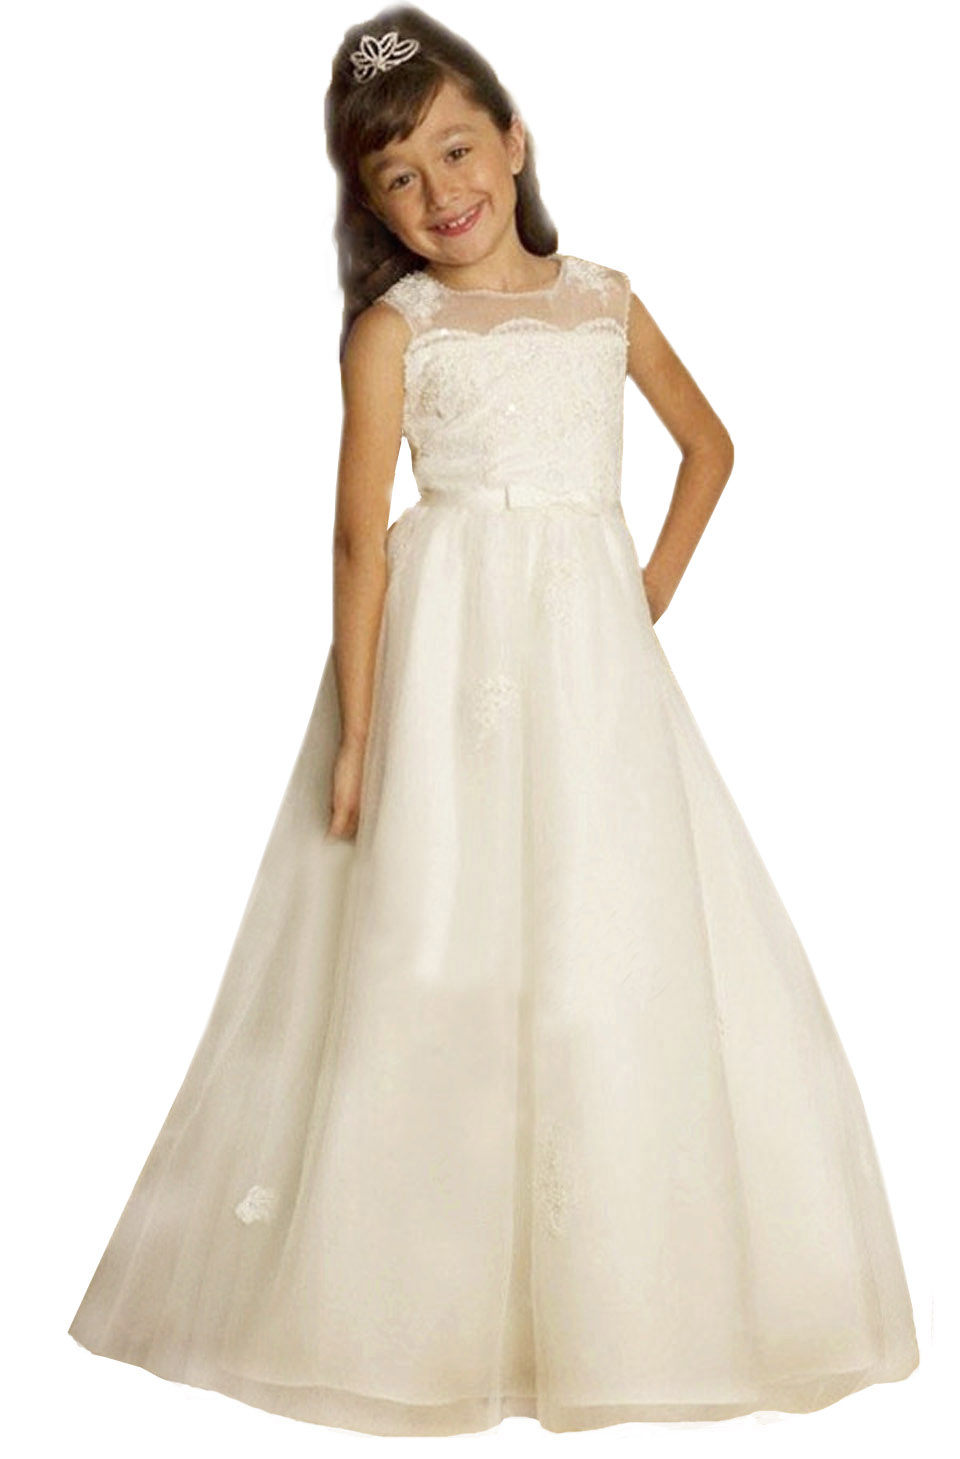 New Flower Girls Dresses For Wedding Gowns Lace Girl Birthday Party Dress First Communion Dresses For Girls 2017 new arrival flower girls dresses for wedding white girl birthday party dress fashion first communion dresses with sashes